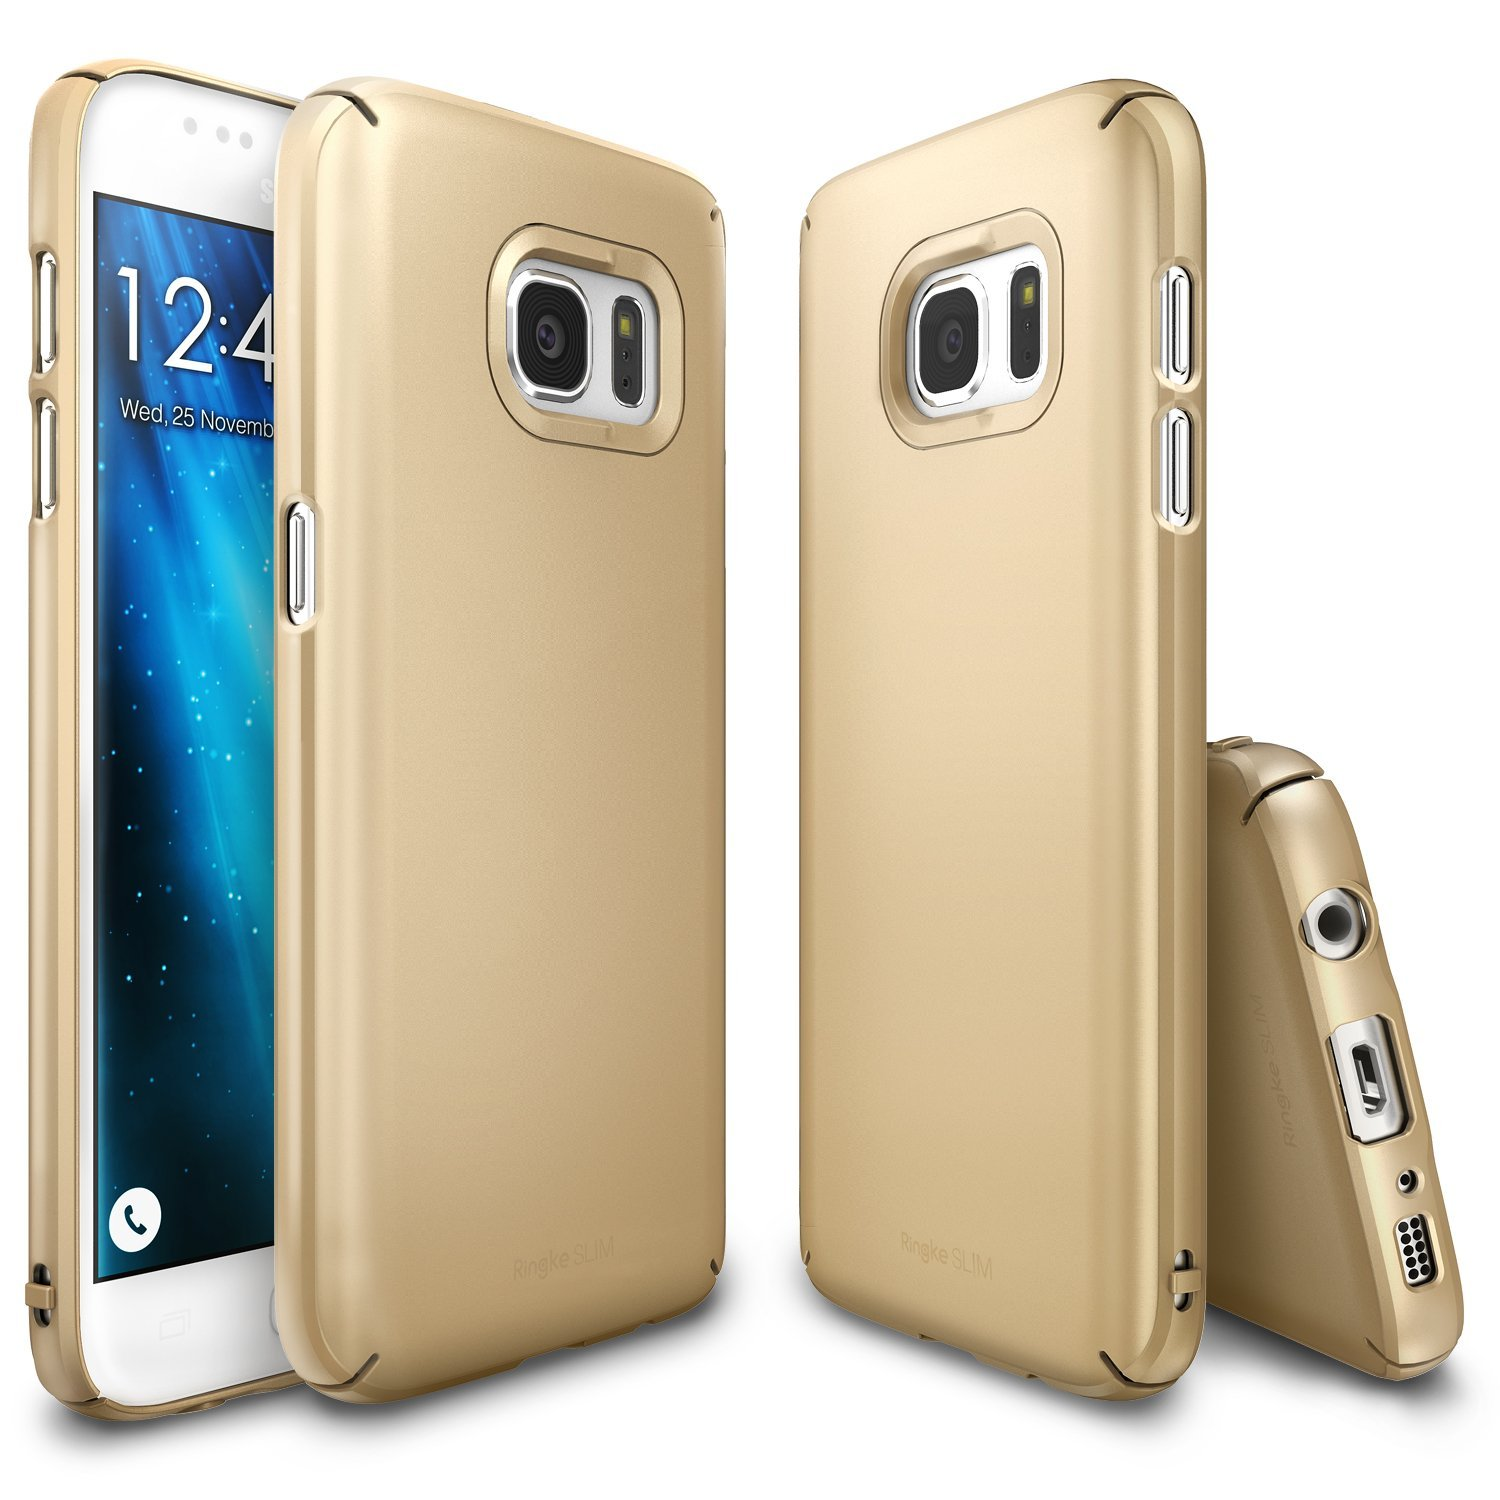 Samsung Galaxy S7 Case,Ringke [Royal Gold] SLIM Series Snug-Fit Ultra-Thin All Coverage Hard Case